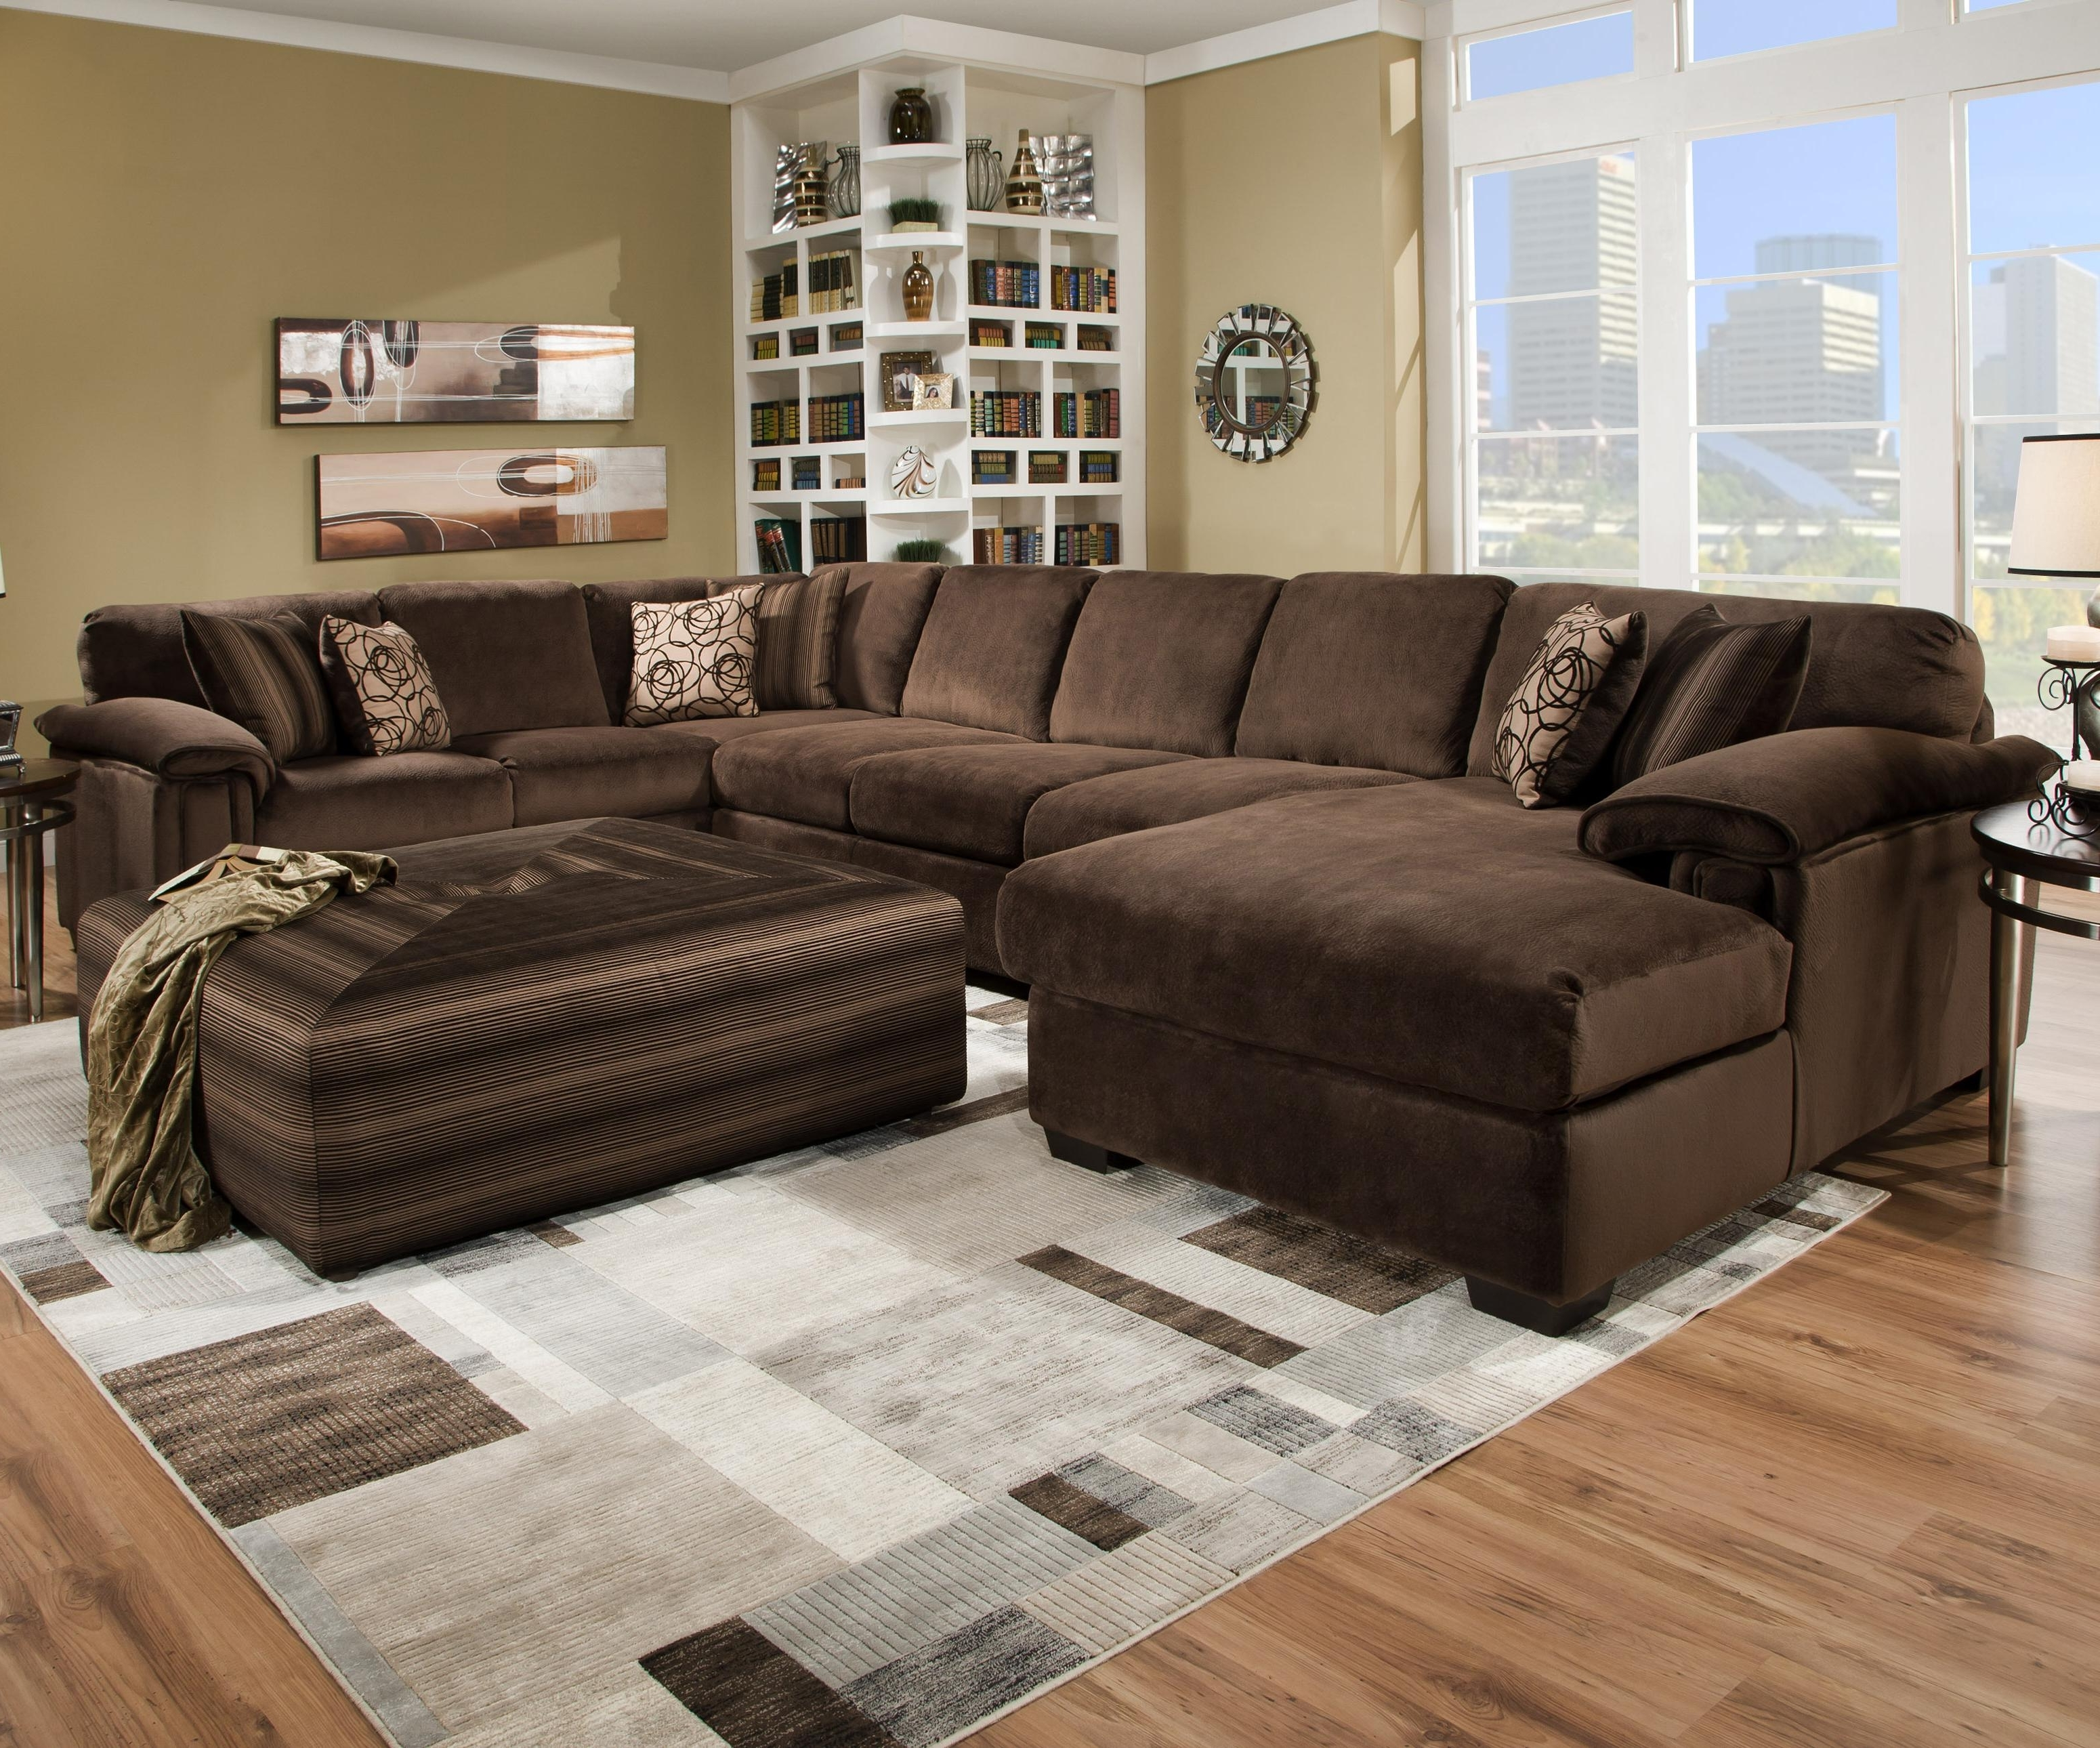 Large Sectional Sofa With Ottoman (View 10 of 15)